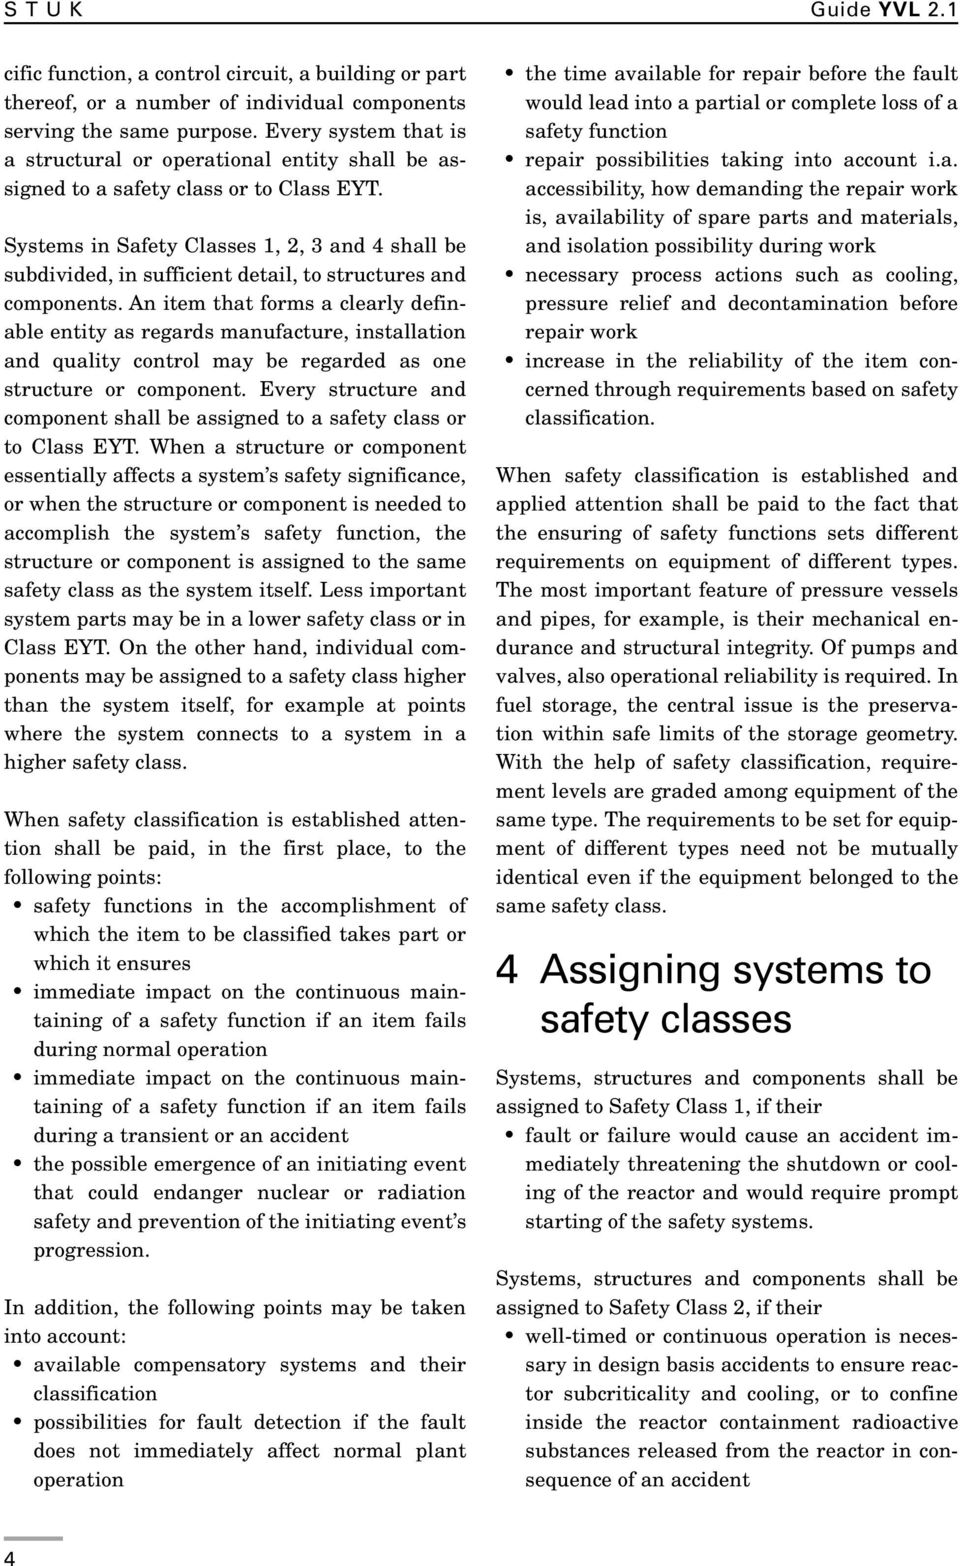 Systems in Safety Classes 1, 2, 3 and 4 shall be subdivided, in sufficient detail, to structures and components.